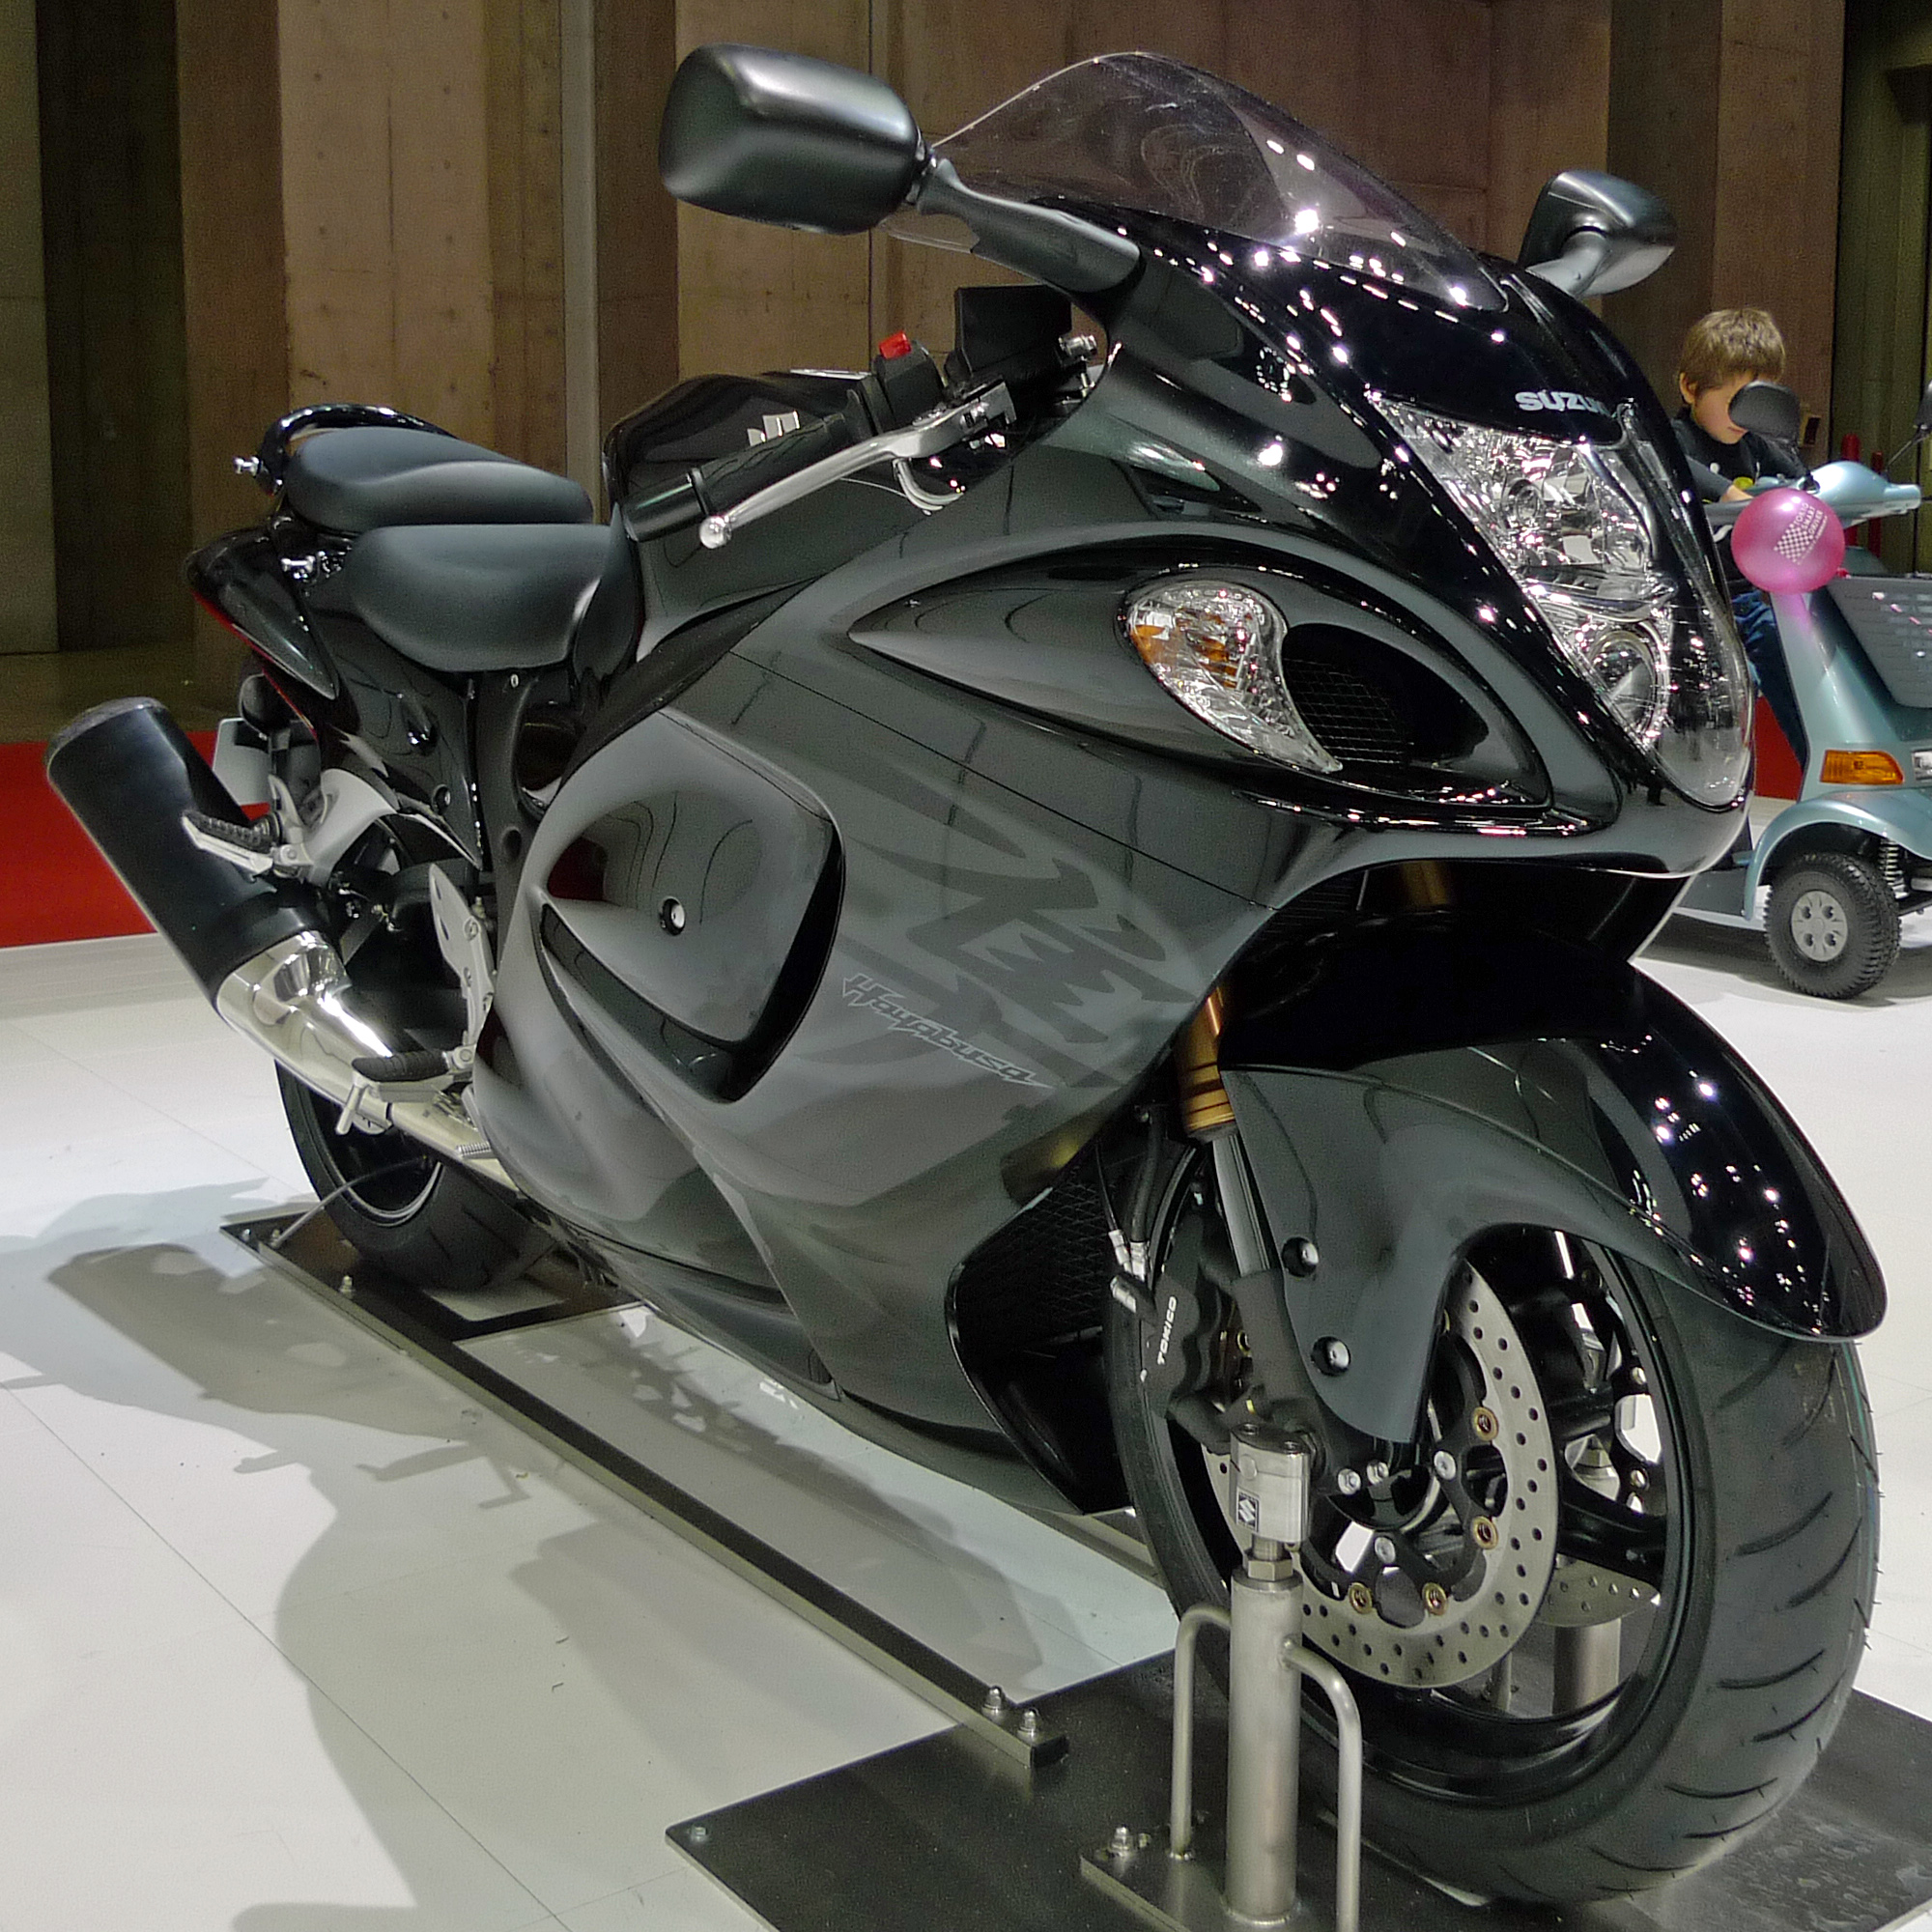 Suzuki Hayabusa Engine Horsepower